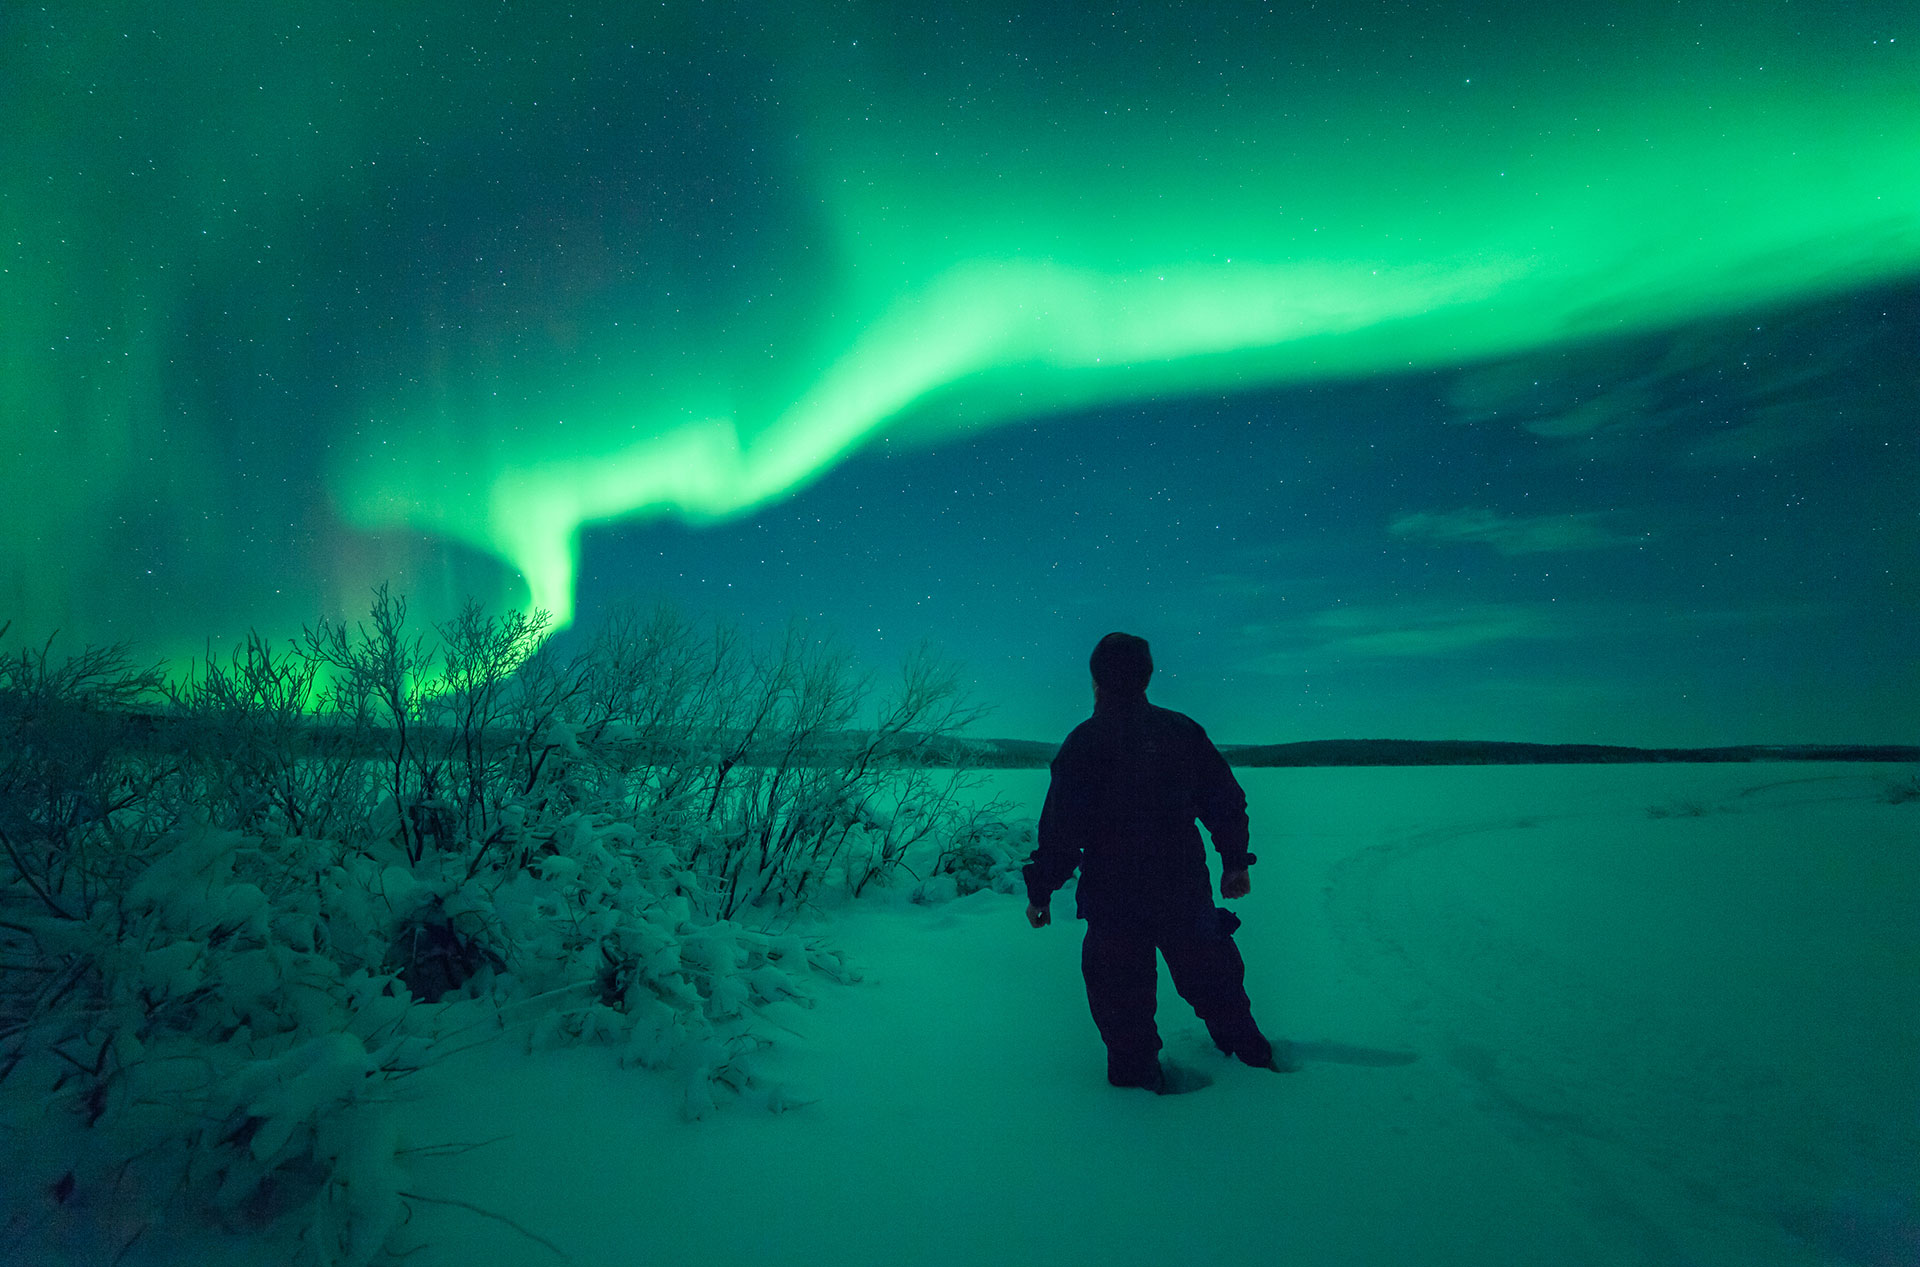 Experience The Northern Lights Aurora Borealis In